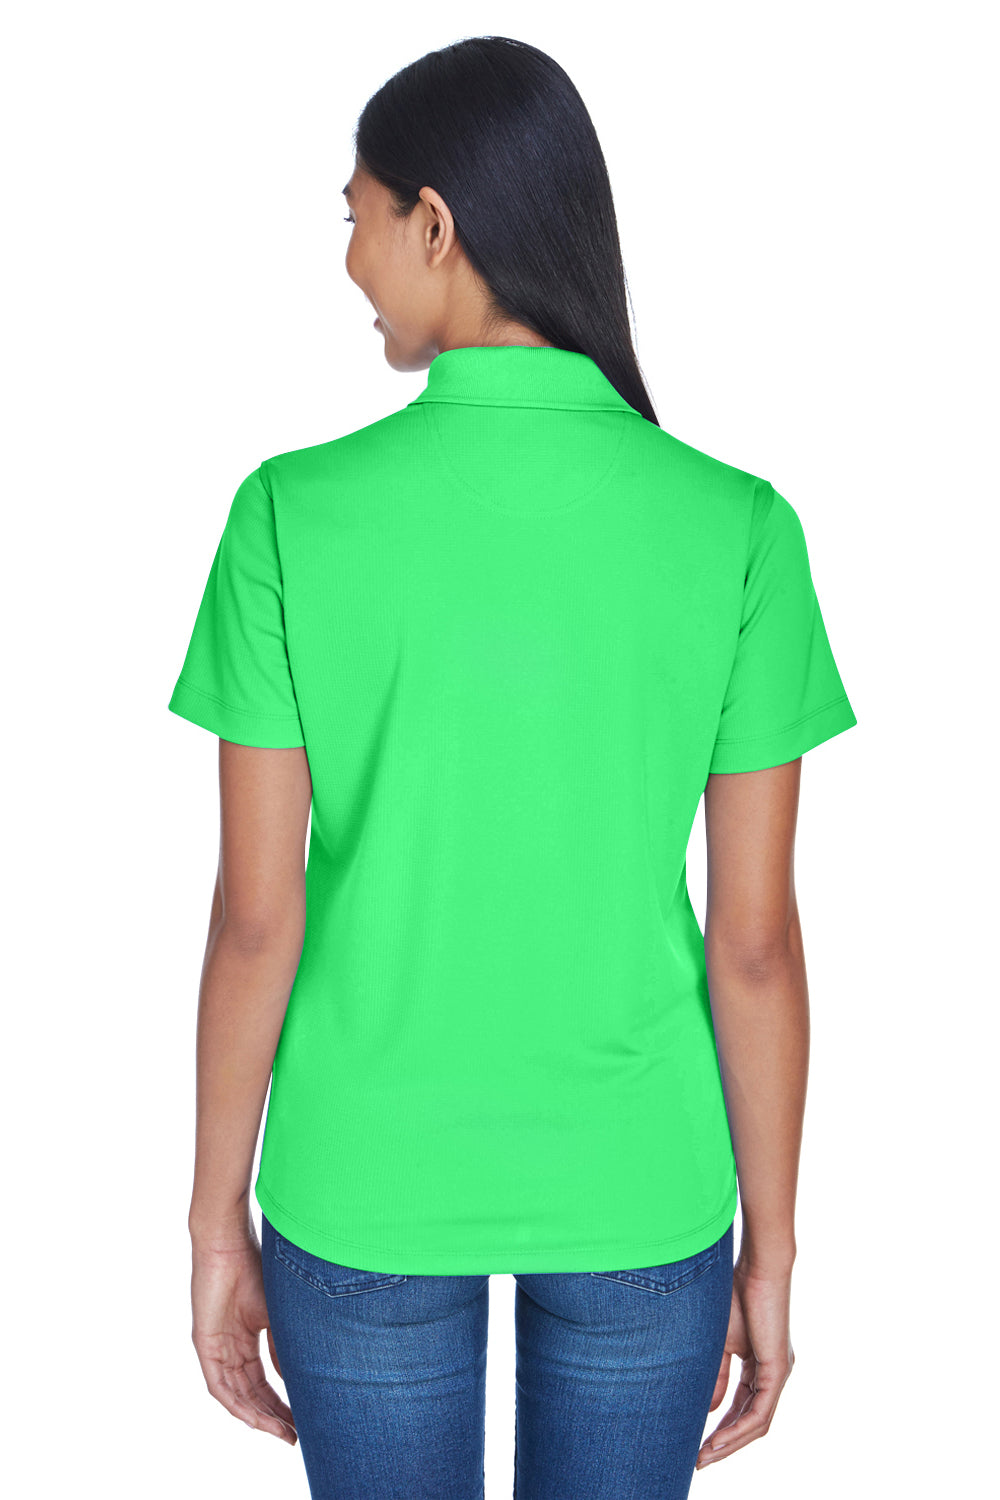 UltraClub 8445L Womens Cool & Dry Performance Moisture Wicking Short Sleeve Polo Shirt Cool Green Back